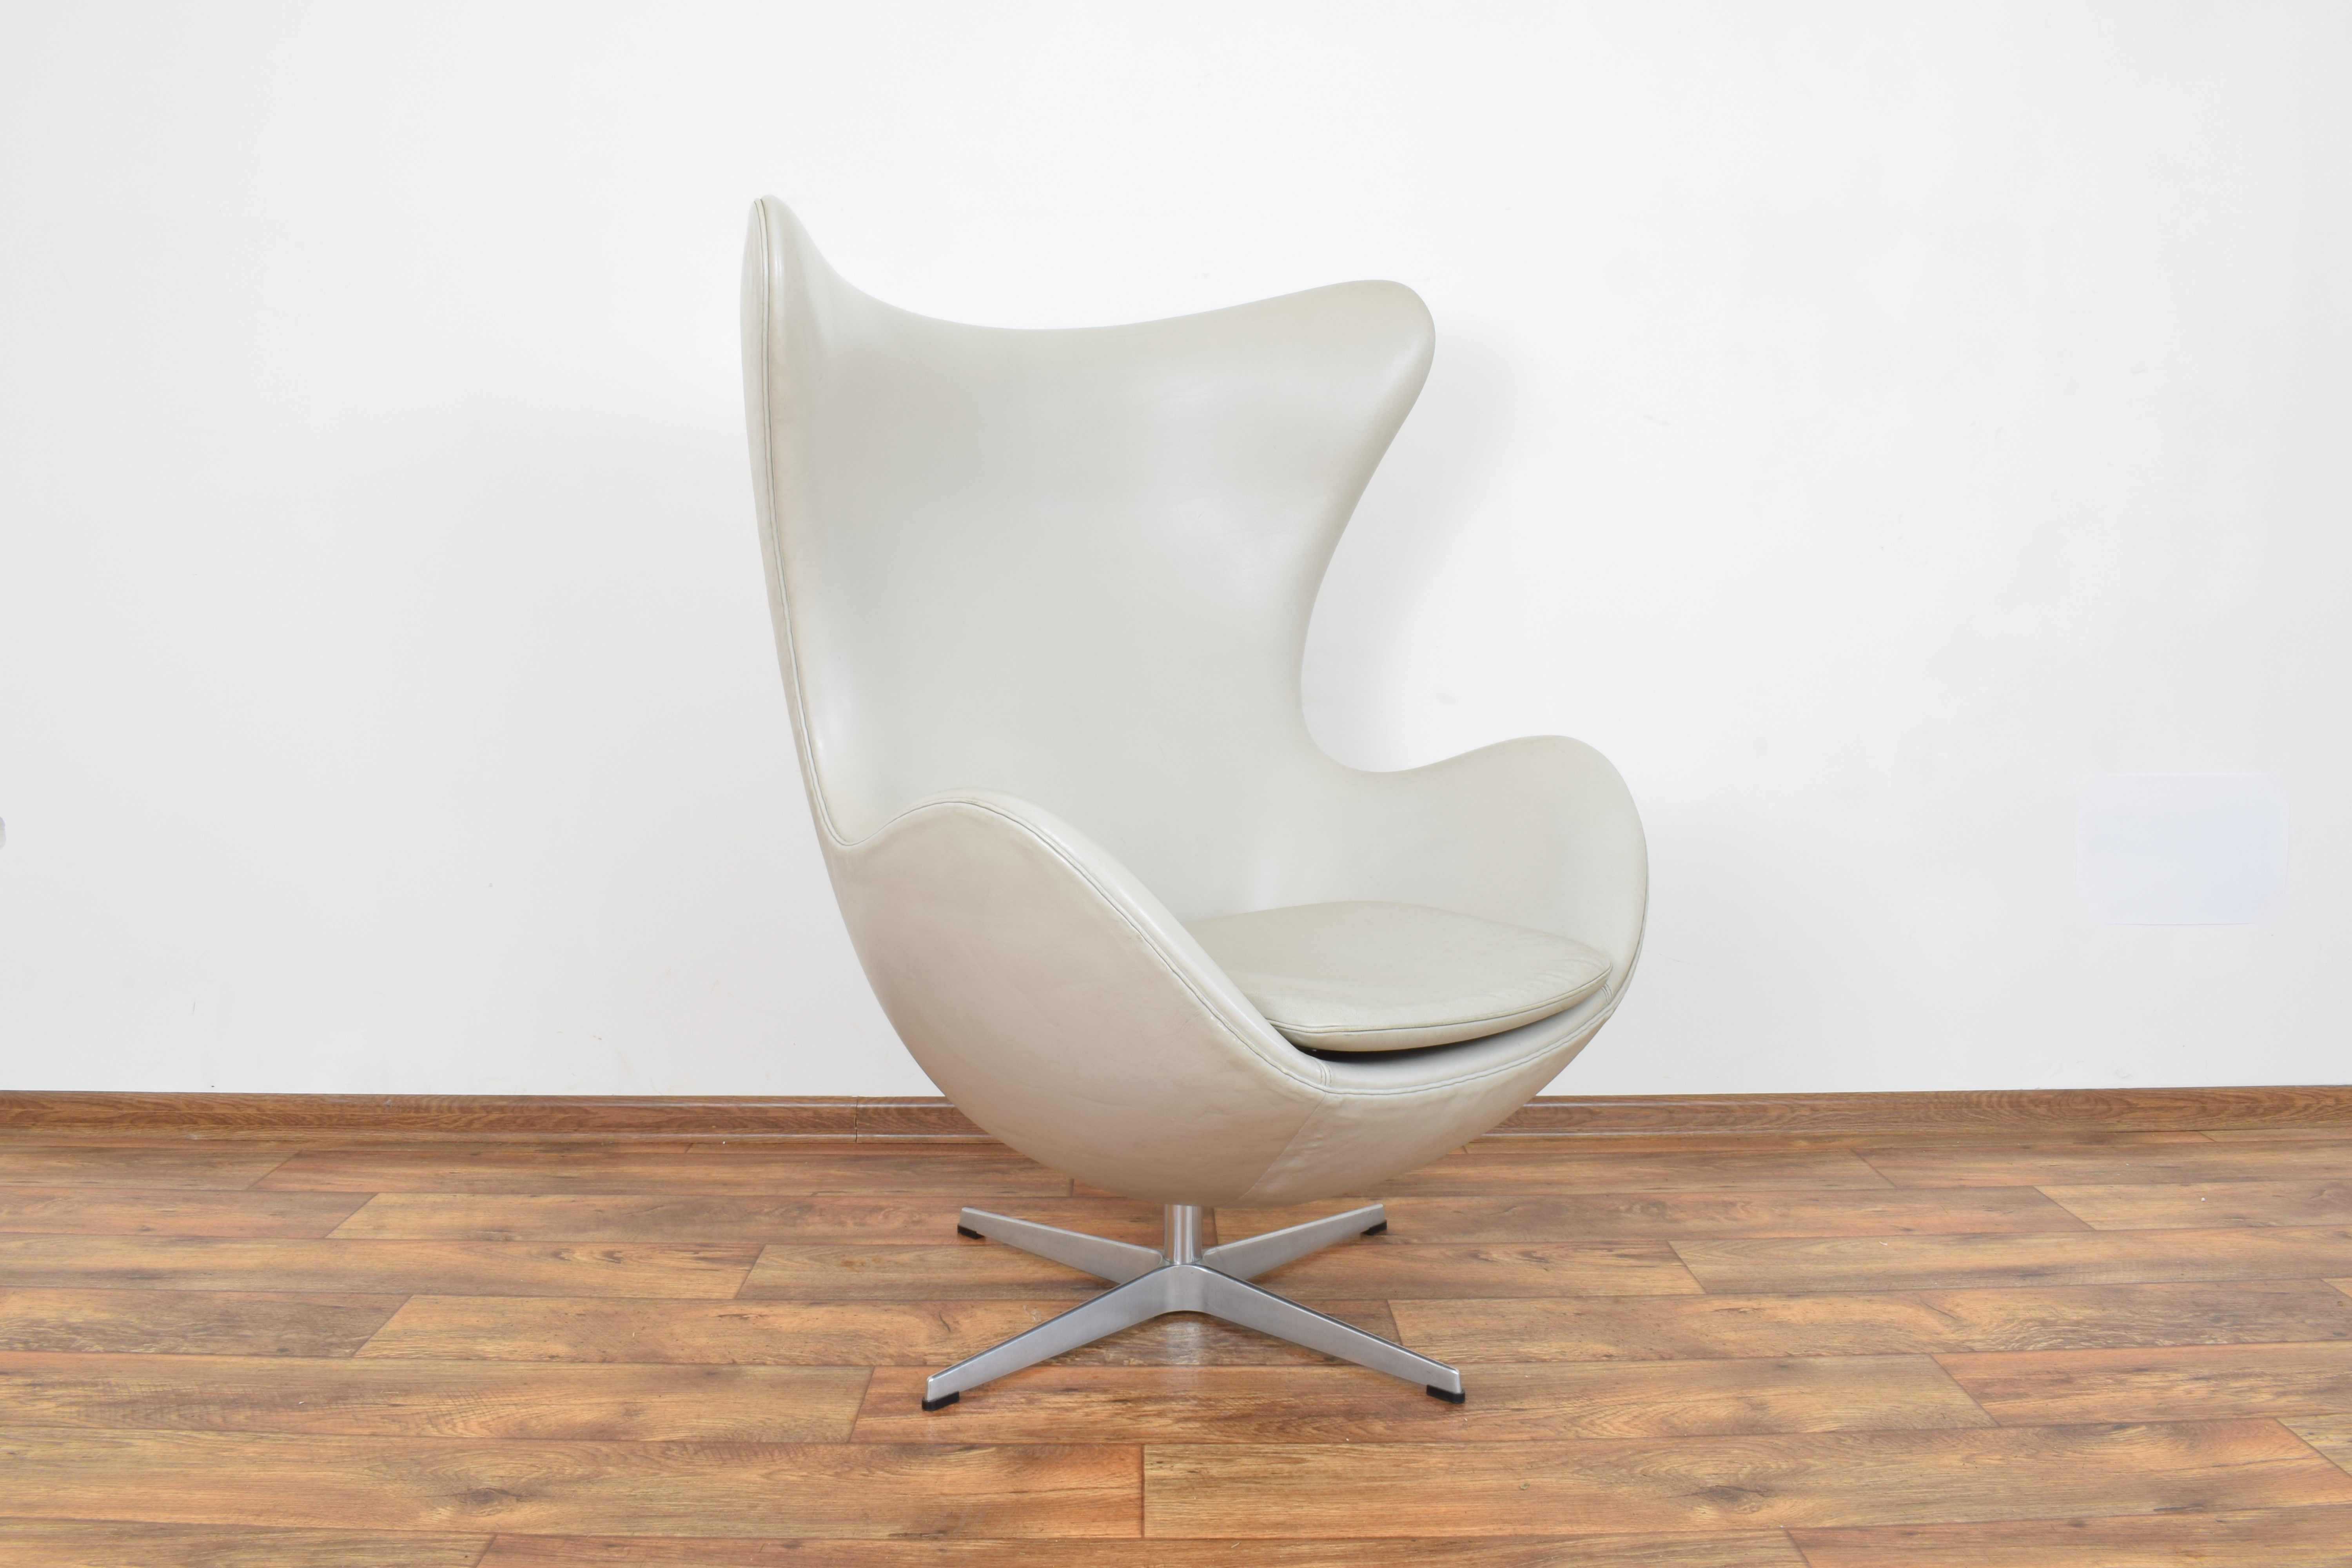 Mid Century Leather Egg Chair By Arne Jacobsen For Fritz Hansen Arne Jacobsen Fritz Hansen Vinterior